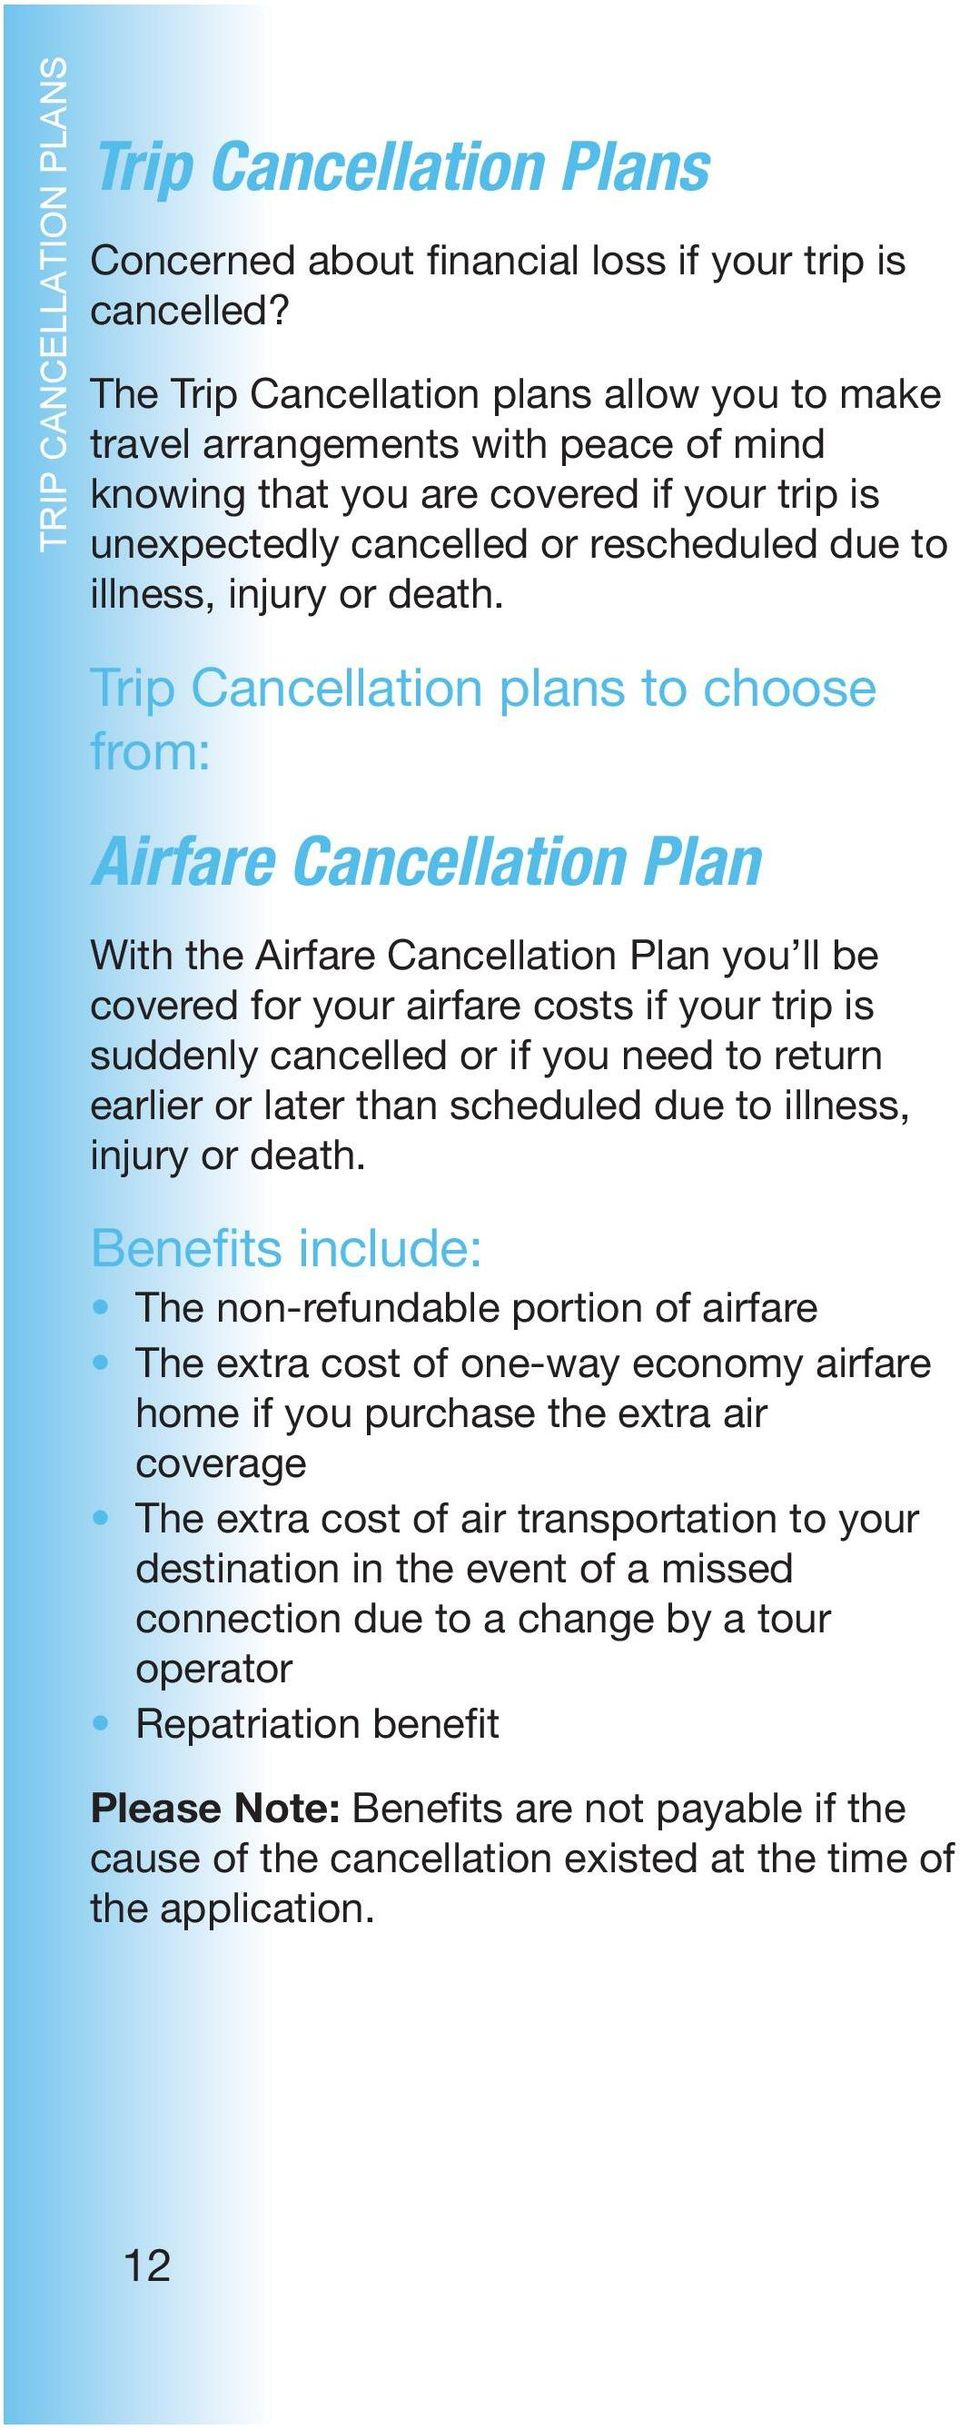 Trip Cancellation plans to choose from: Airfare Cancellation Plan With the Airfare Cancellation Plan you ll be covered for your airfare costs if your trip is suddenly cancelled or if you need to